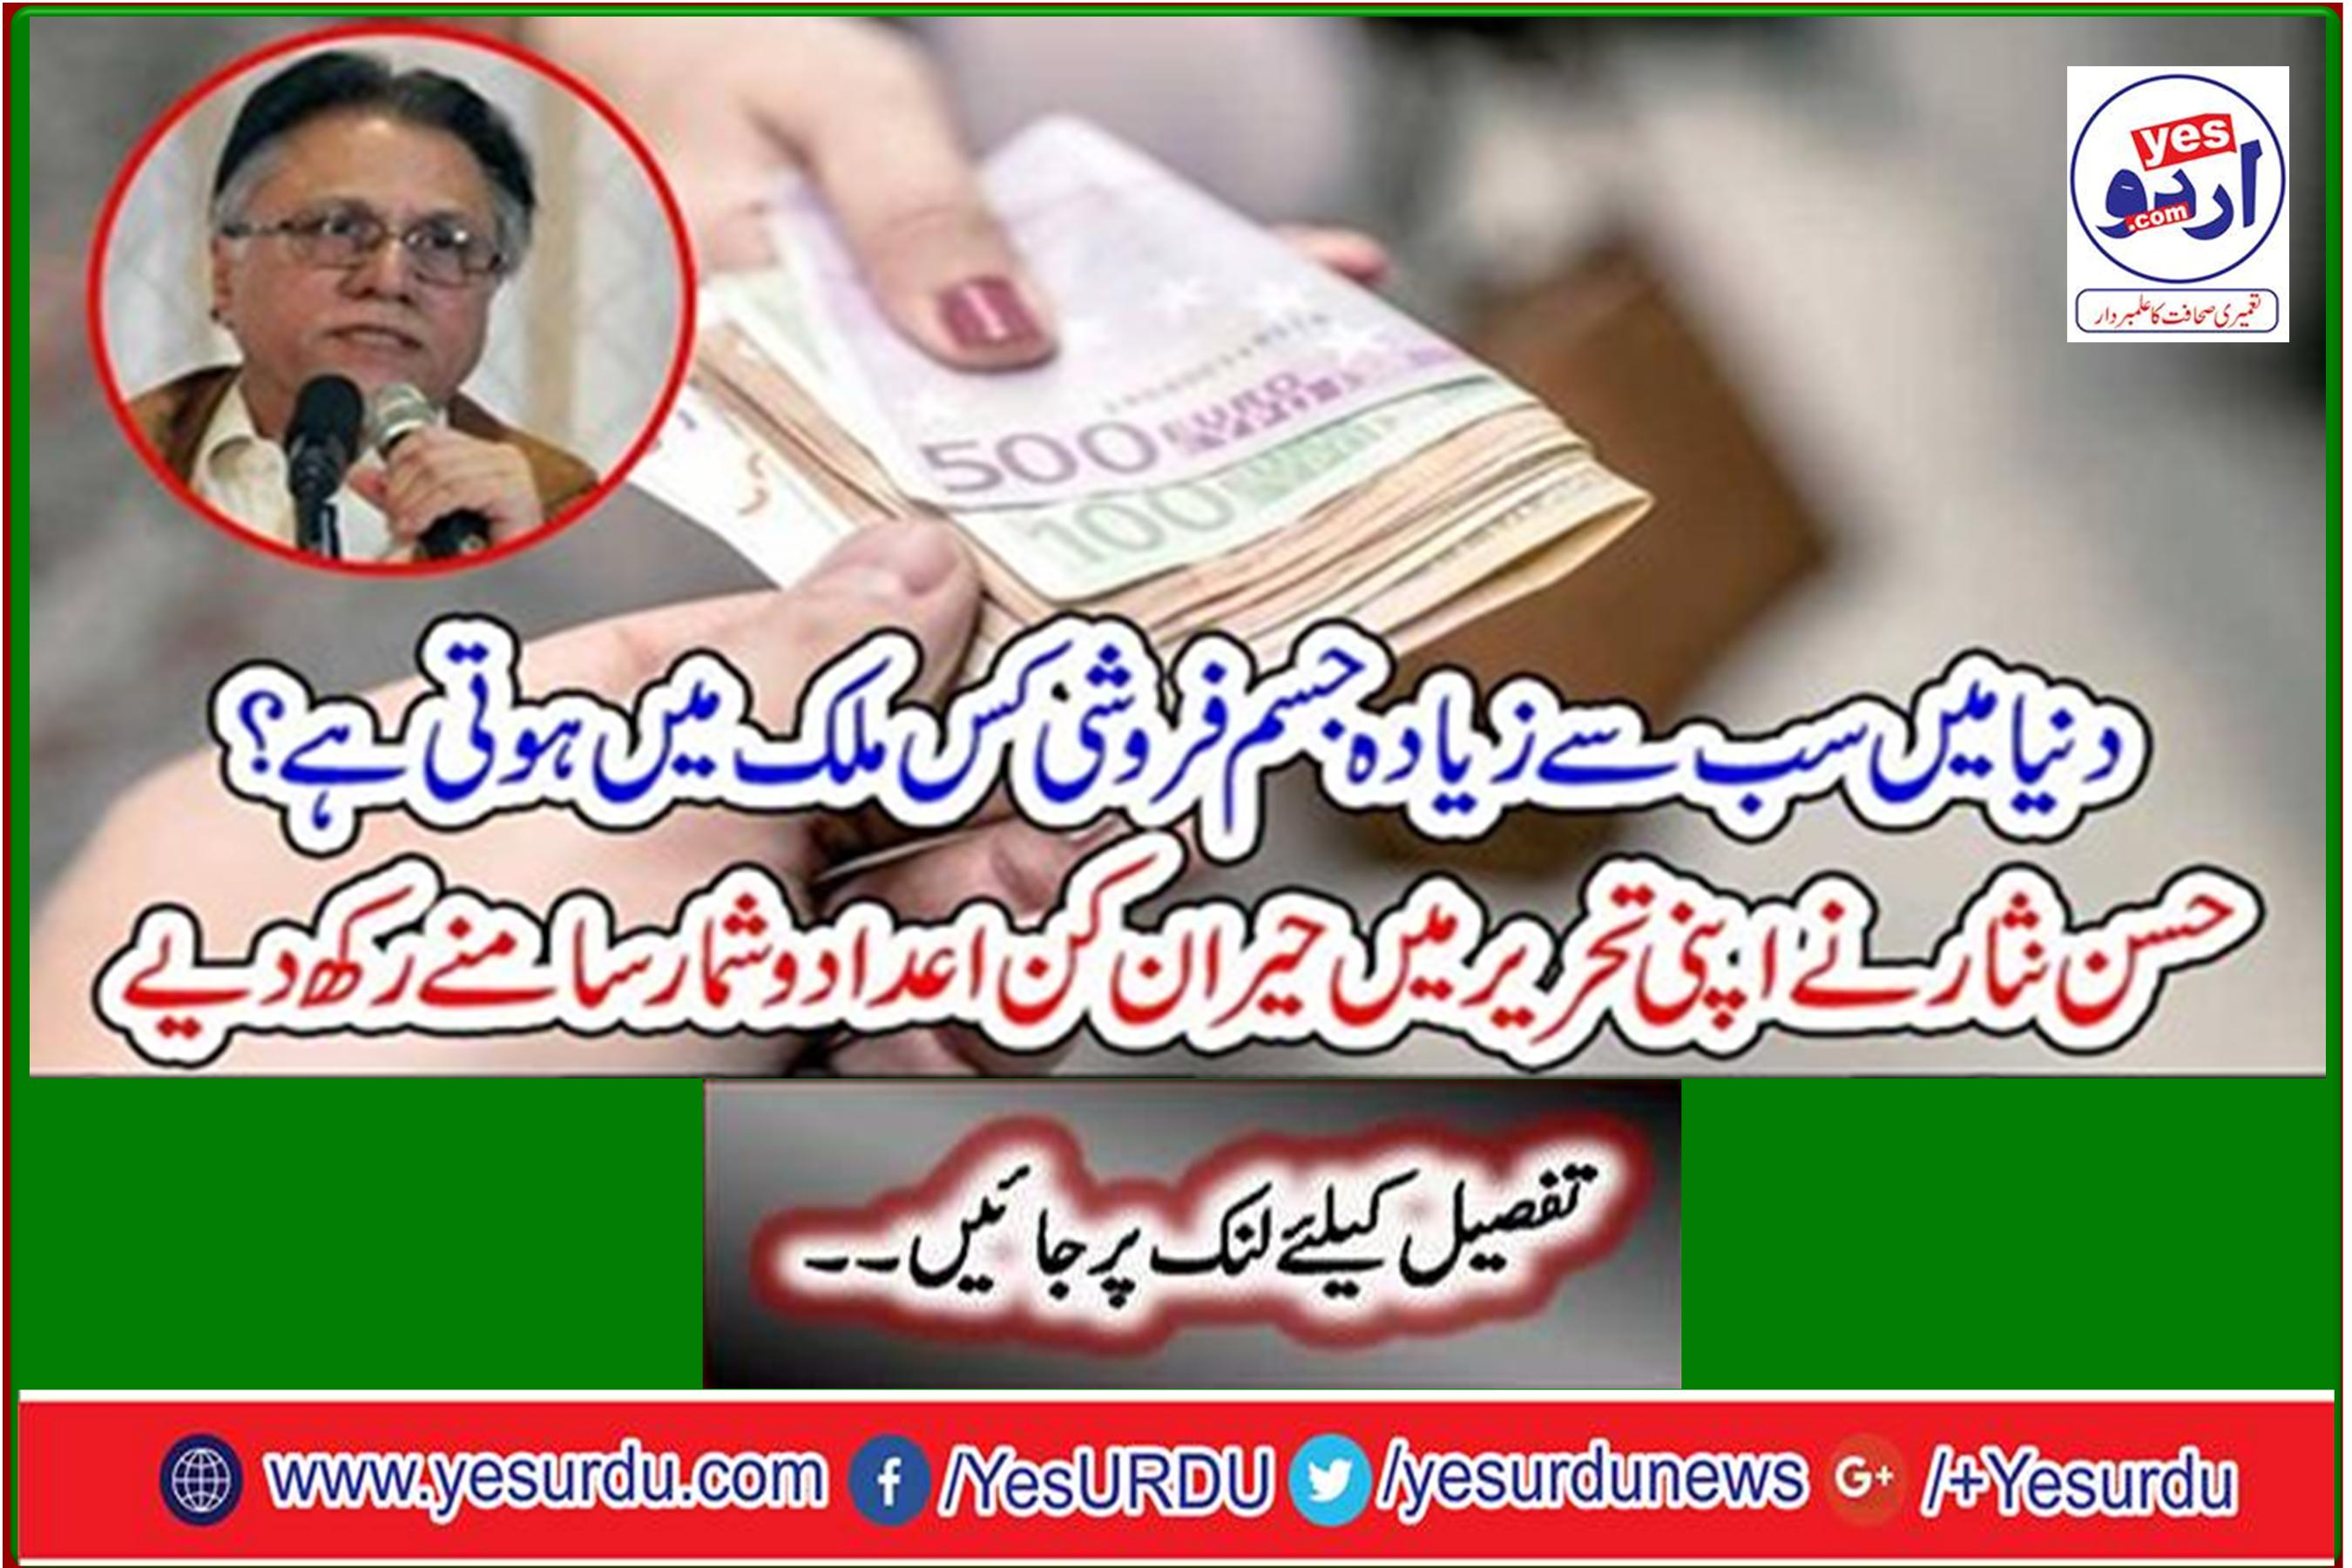 Hassan Nisar in his writing put up amazing figures